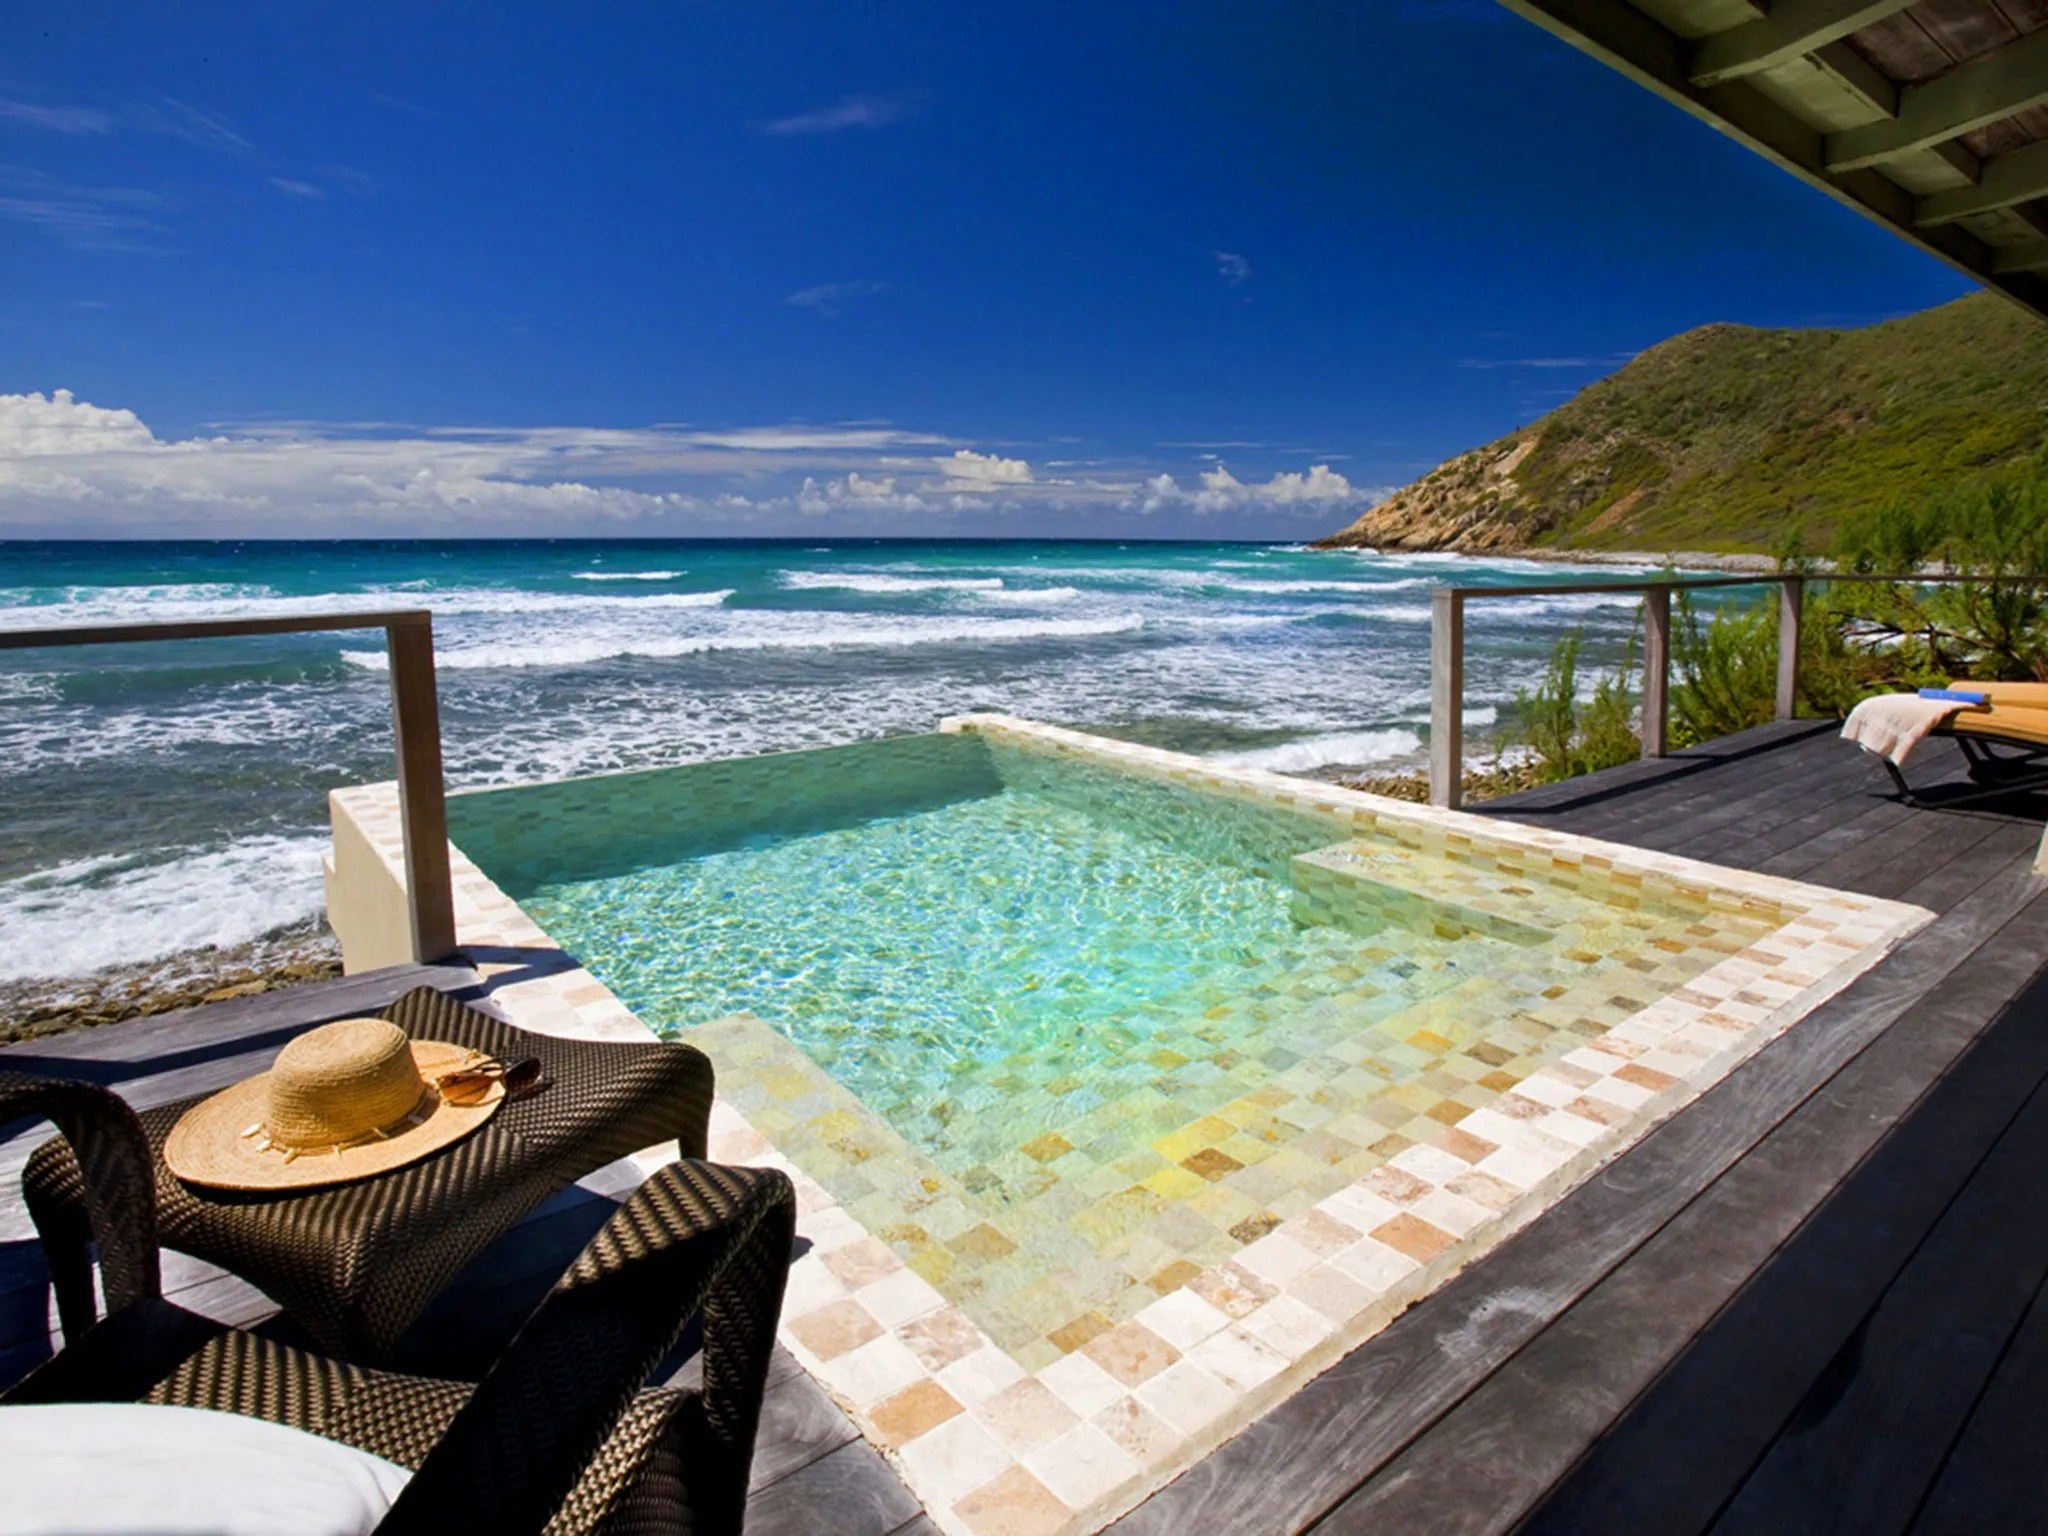 Piscinas Rusticas Best Caribbean Resorts With Private Plunge Pools Photos